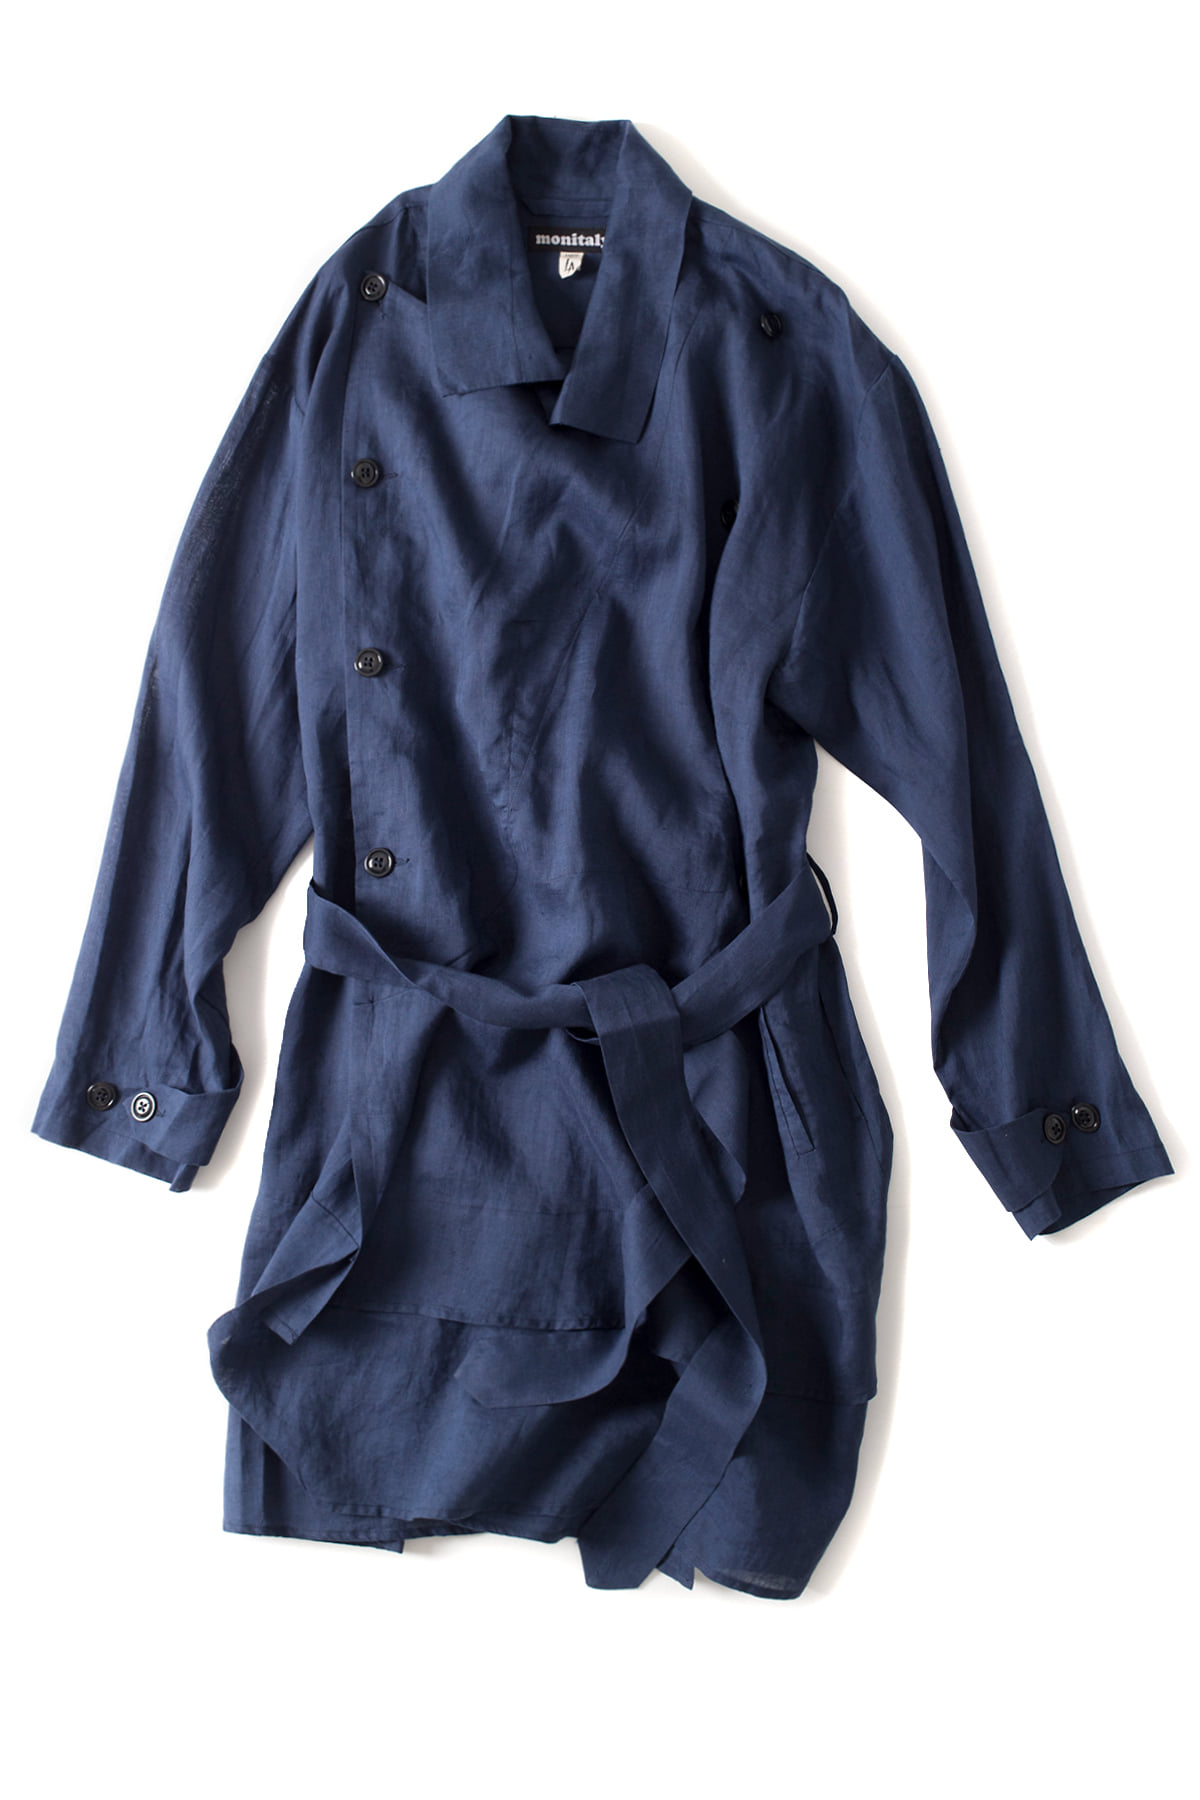 MONITALY : Spring Coat (Navy)